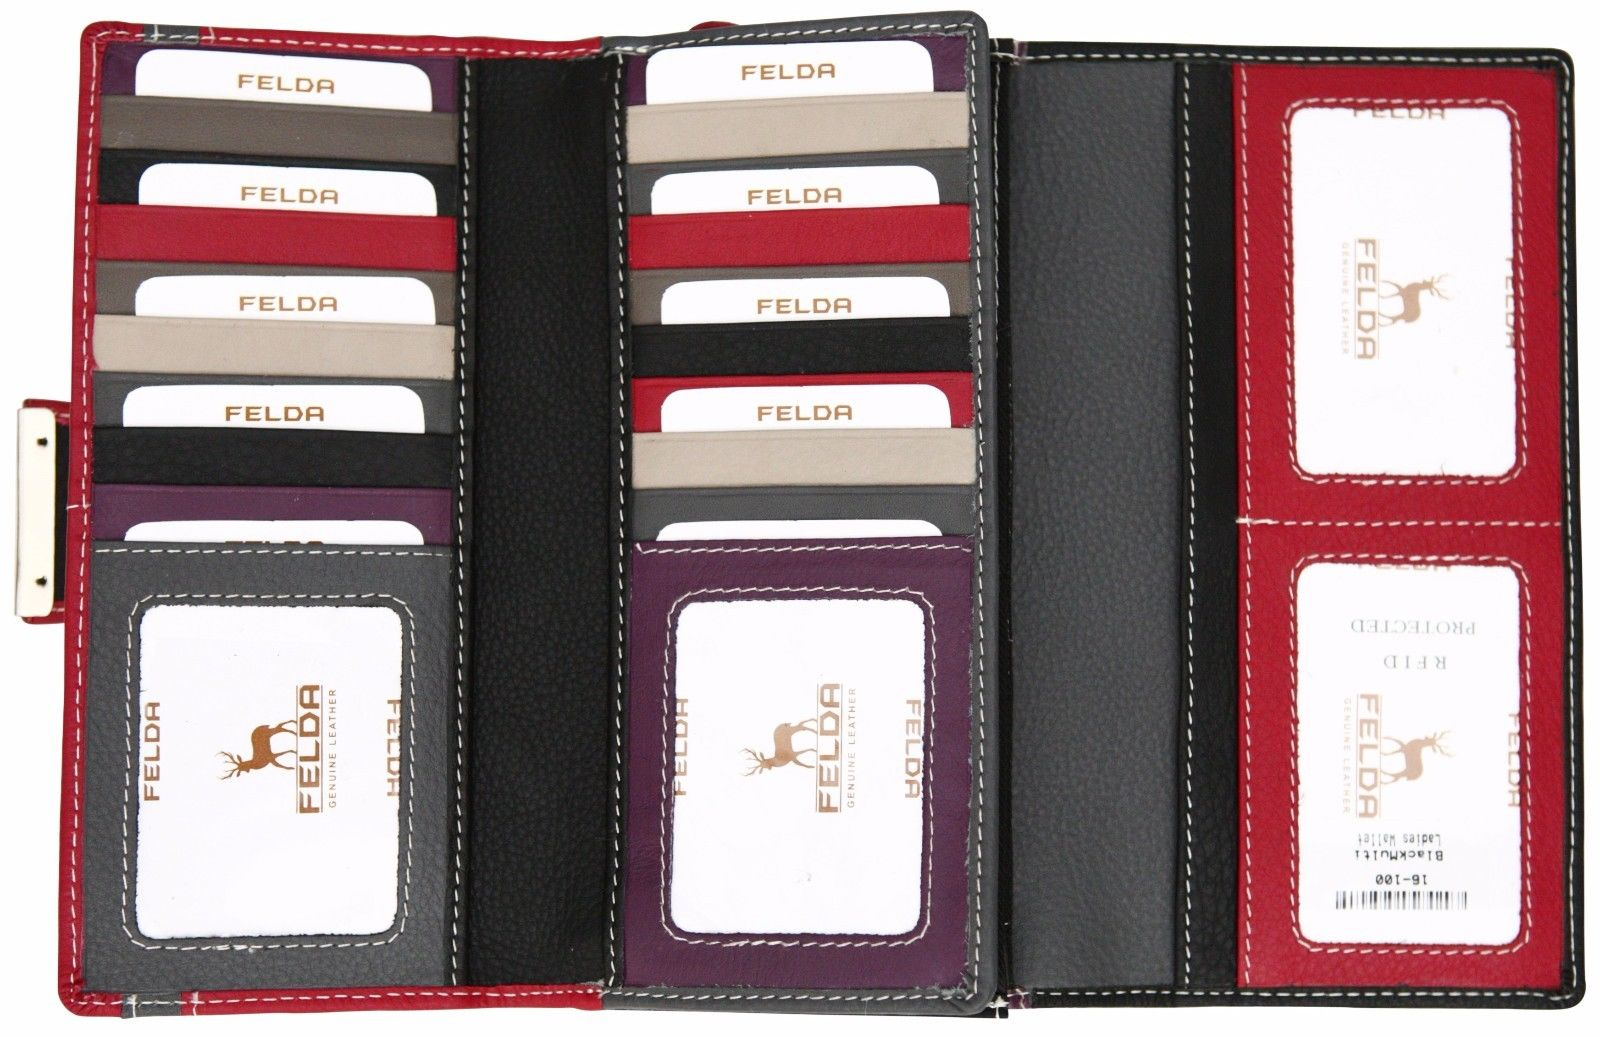 Felda-RFID-Ladies-Leather-Soft-Wallet-Large-Capacity-Purse-Womens-Multi-24-Card miniatuur 24